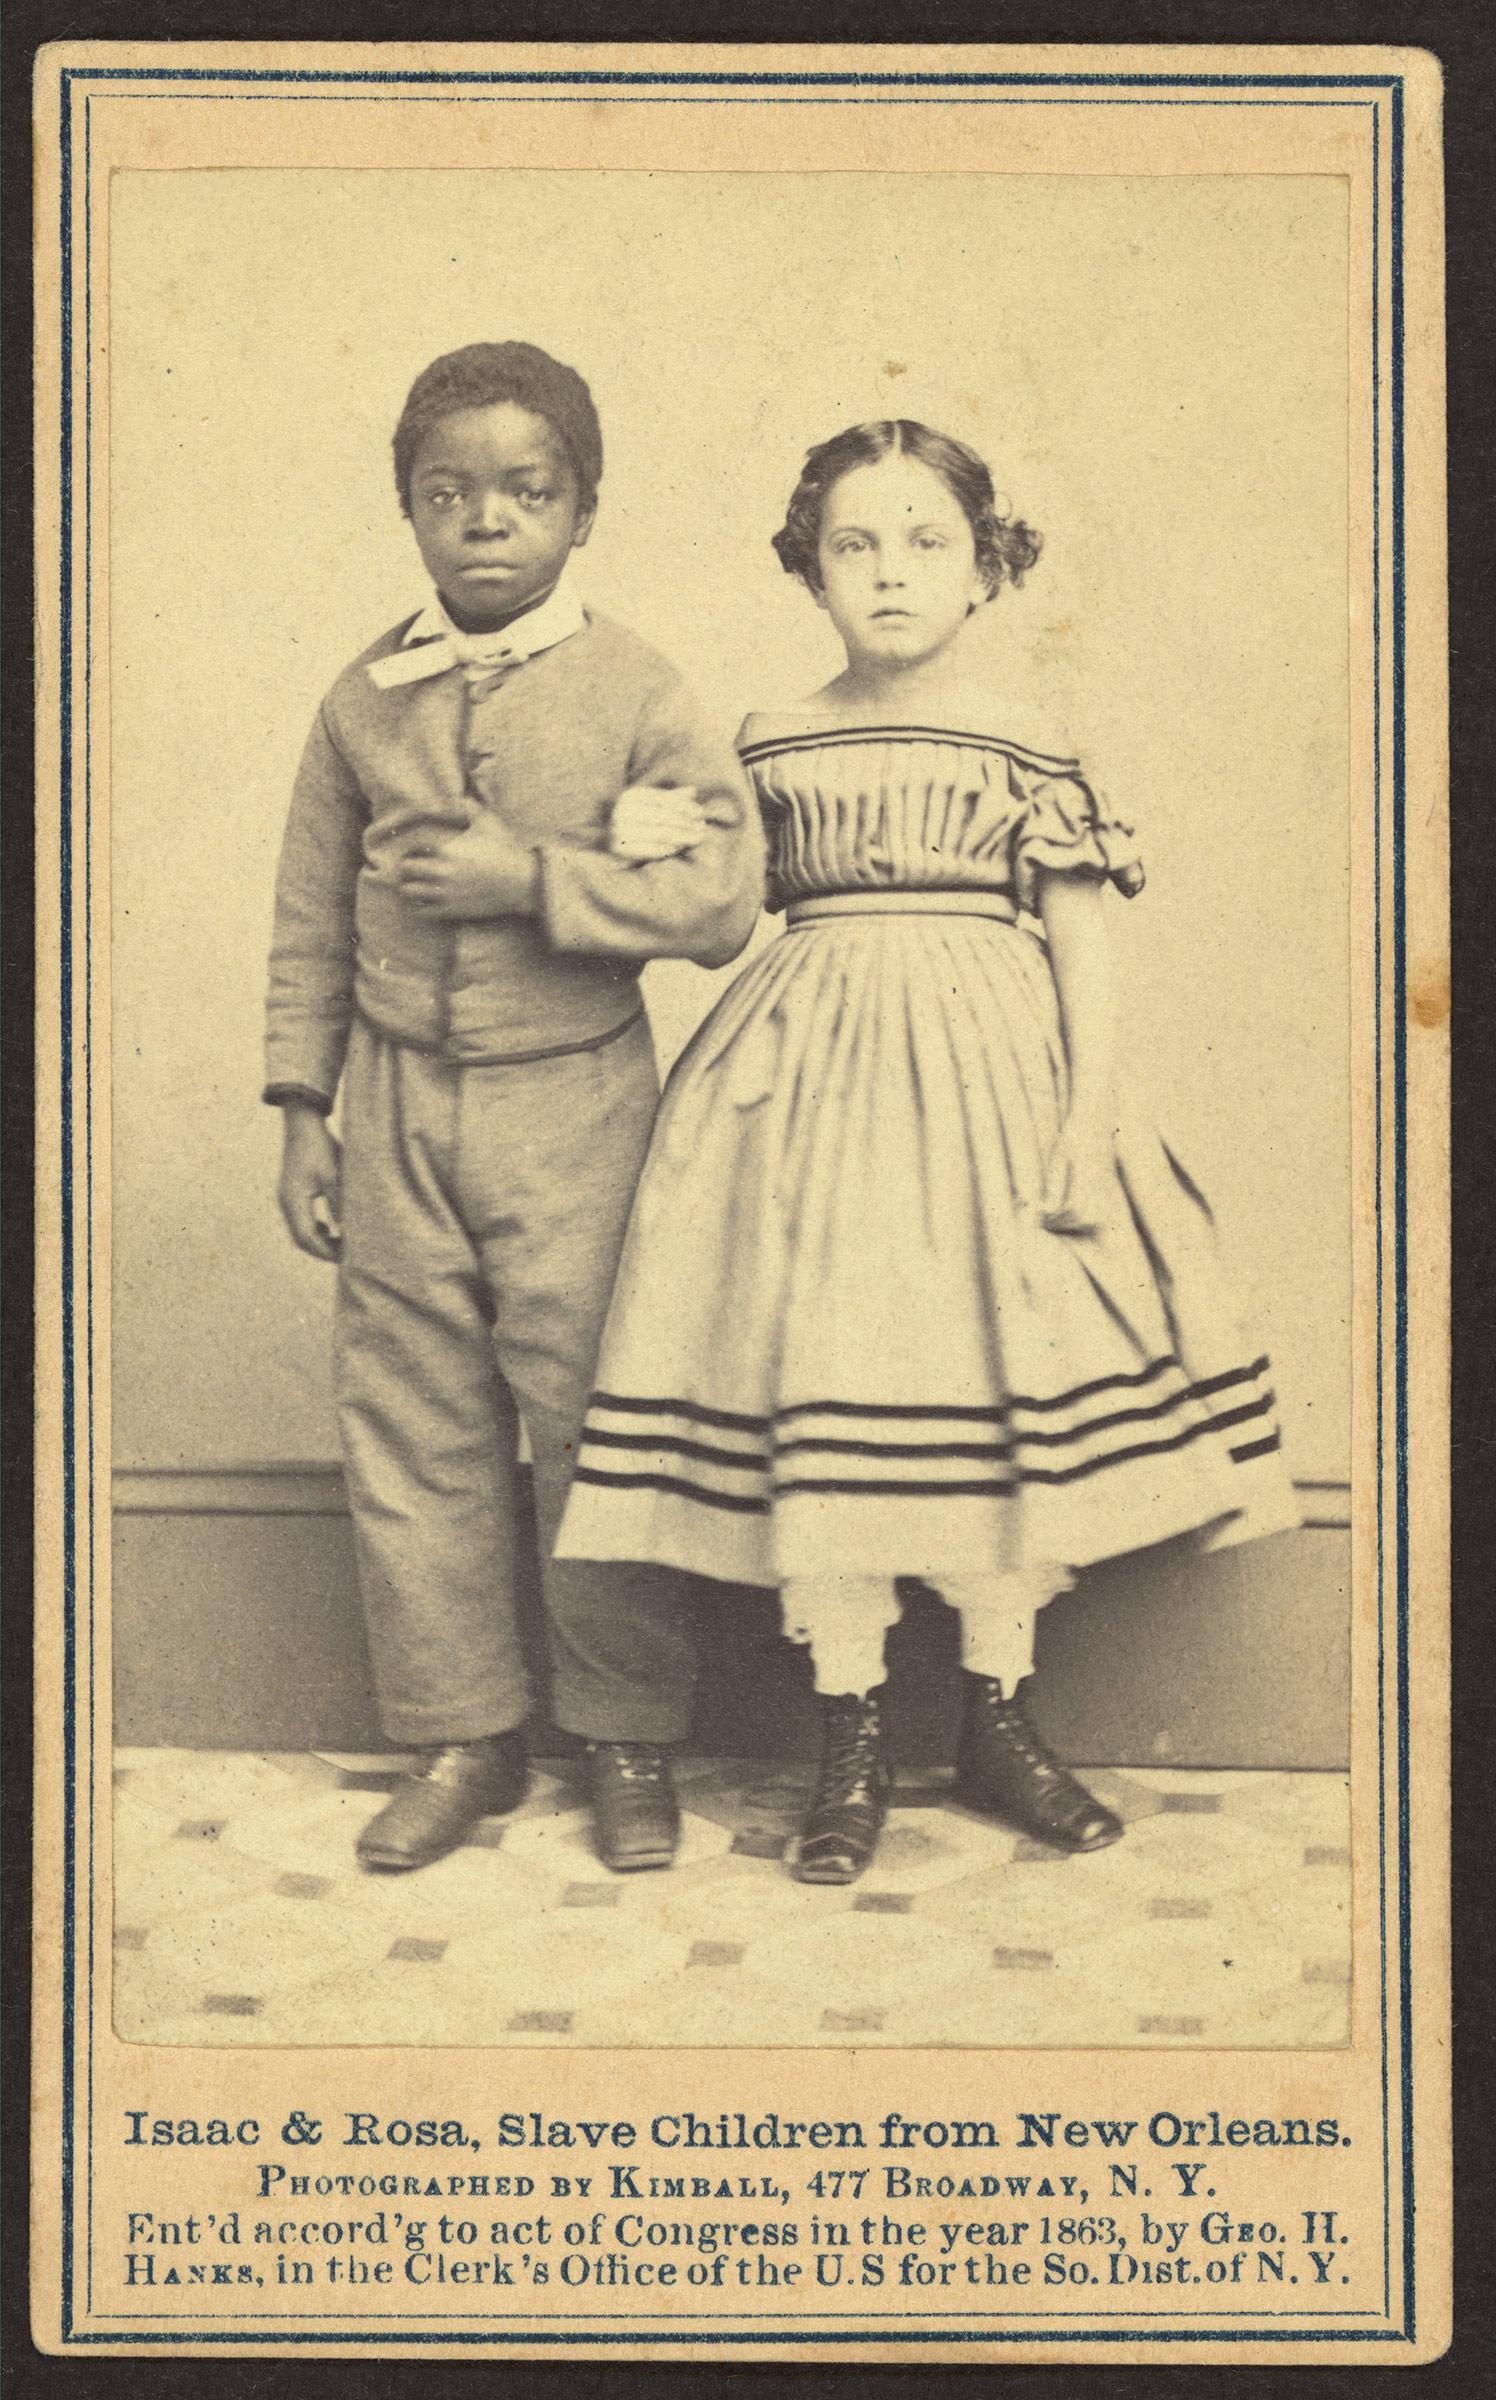 An image of  Isaac & Rosa, slave children from New Orleans,  in 1863. Their photo was among the source materials for the engraving that appeared in Harper's Weekly.